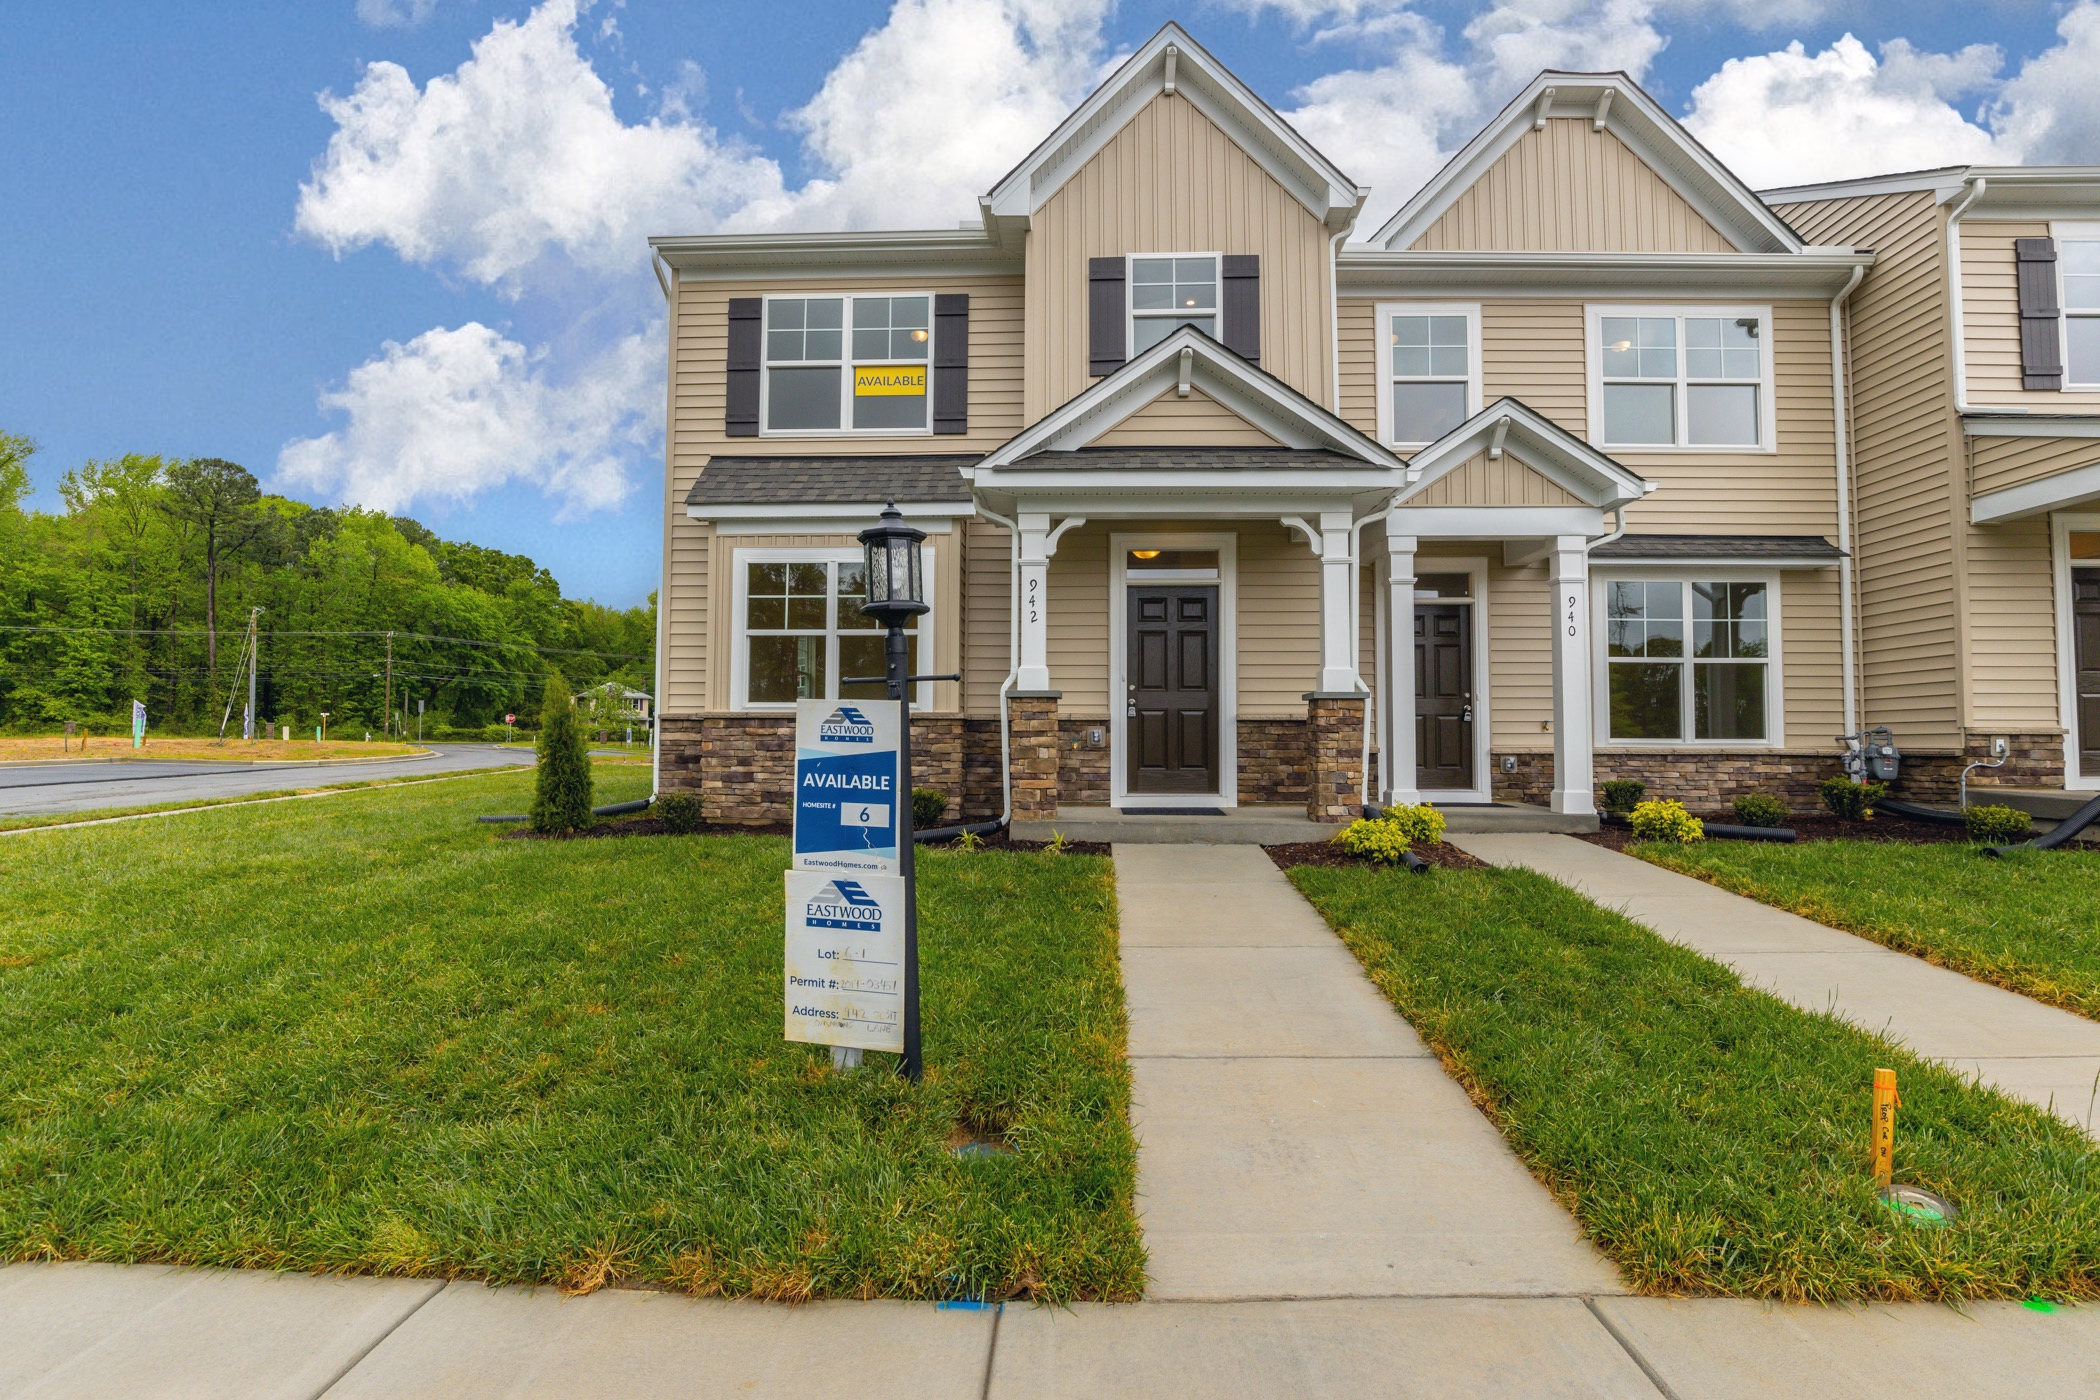 Edenton at The Glens at Scott Place Townhomes